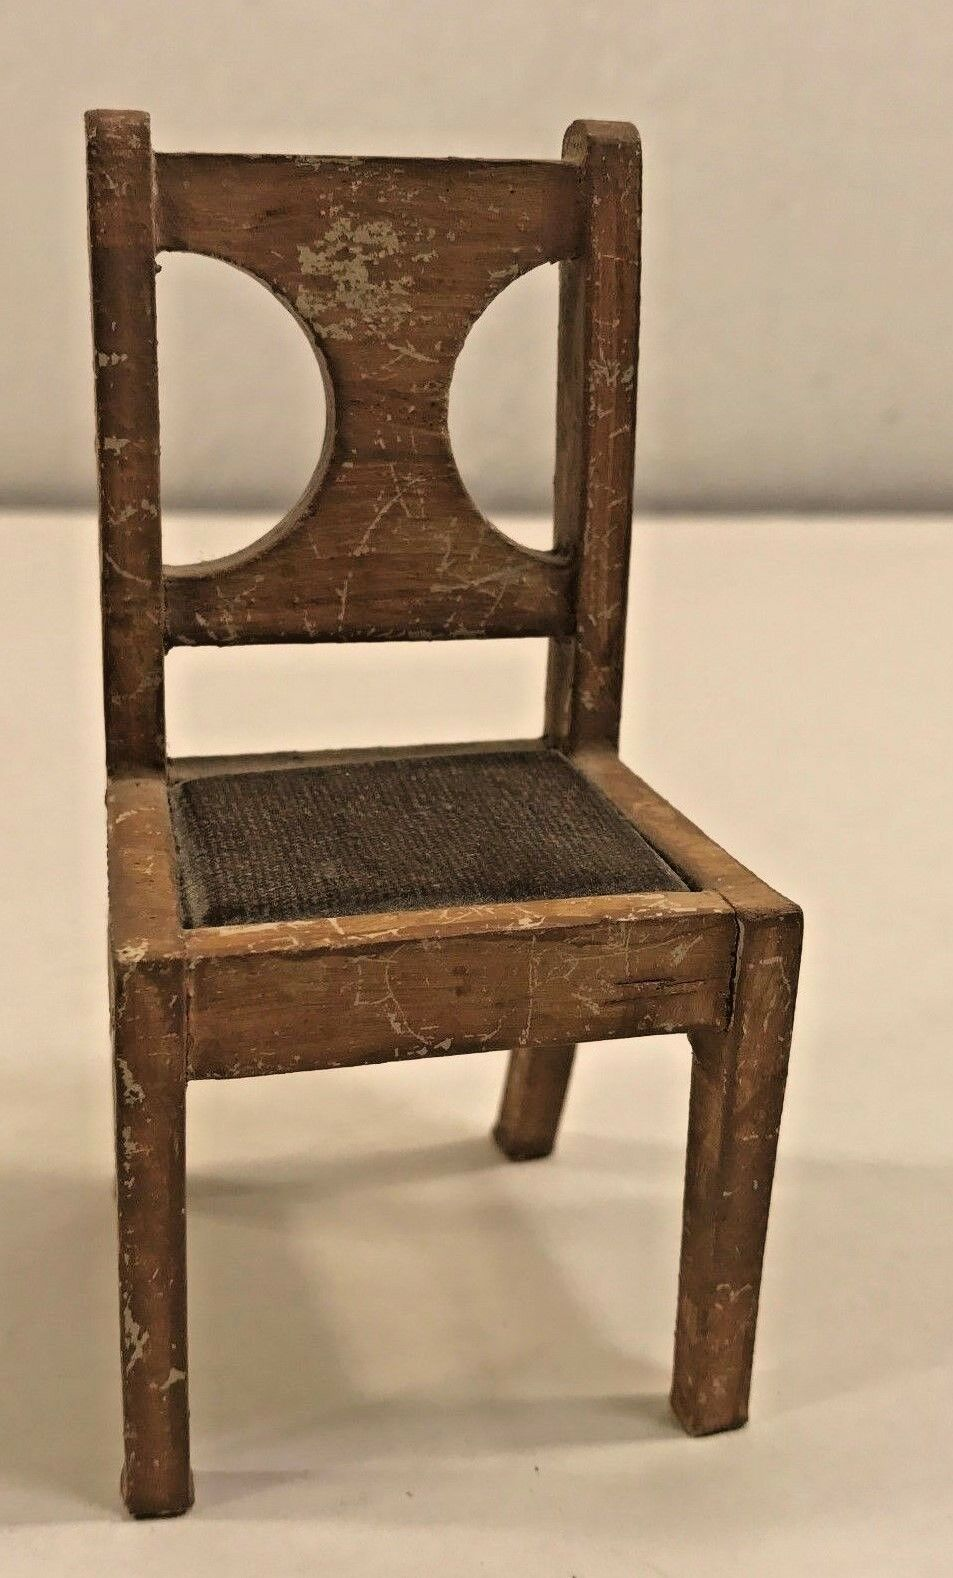 Doll House Dollhouse Collectible Vtg Old Chair Rustic Wood Stained Seat